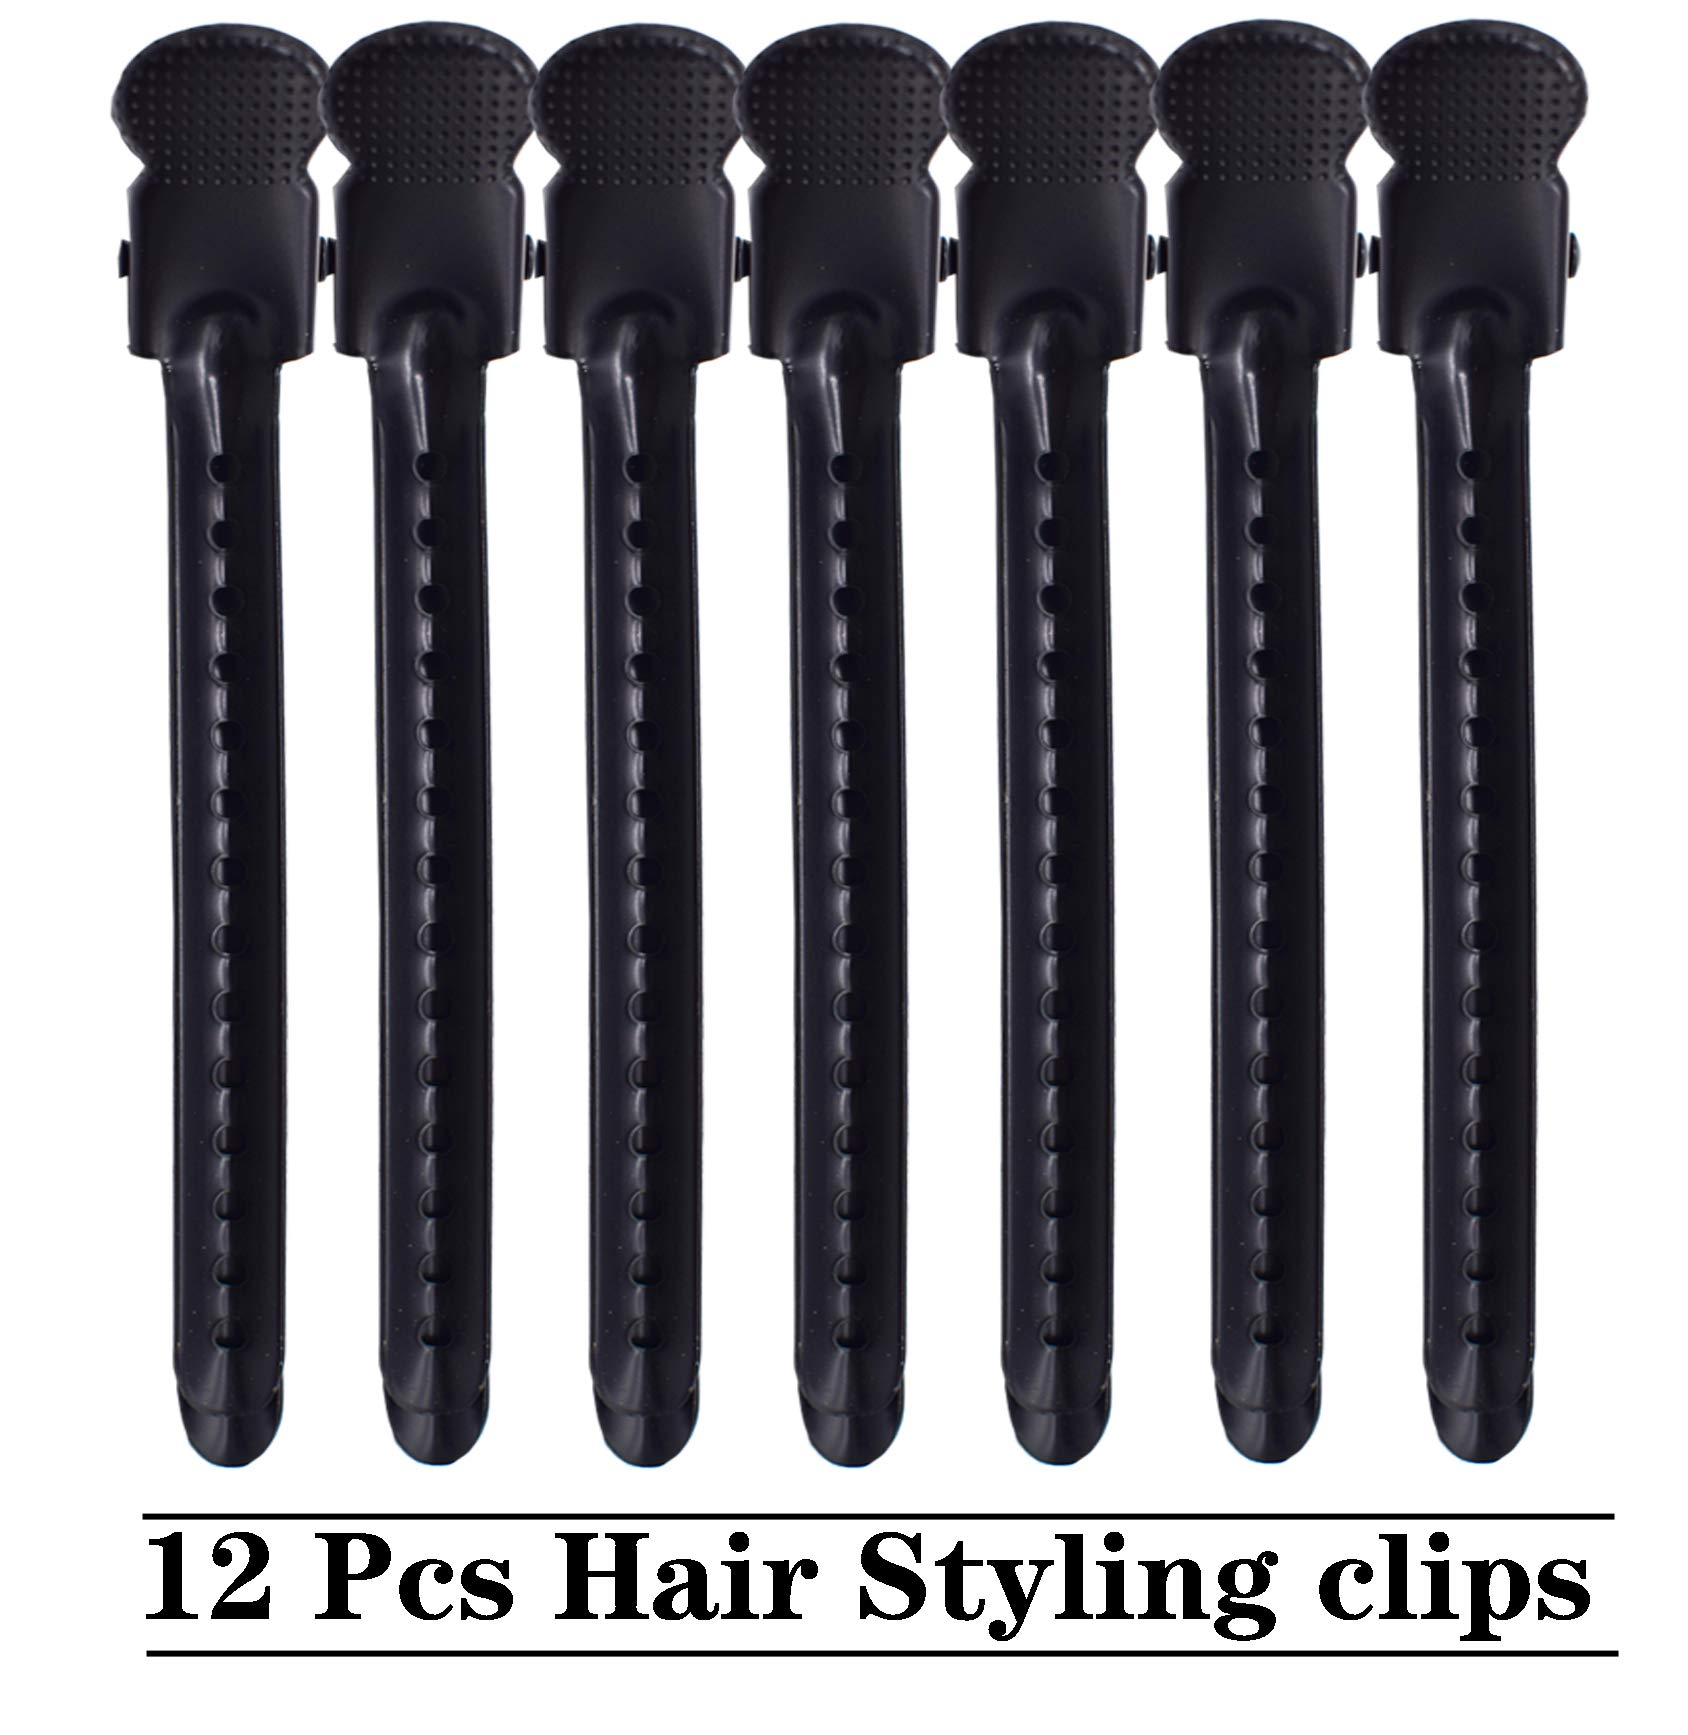 Hair Clips for Styling, 12 Pcs Professional Rustproof Metal Hair Styling Clips Hair Clip Set, 3.7 Inches Durable Salon Hair Clips Styling Tools for Salon, Personal &thick Hair (black)